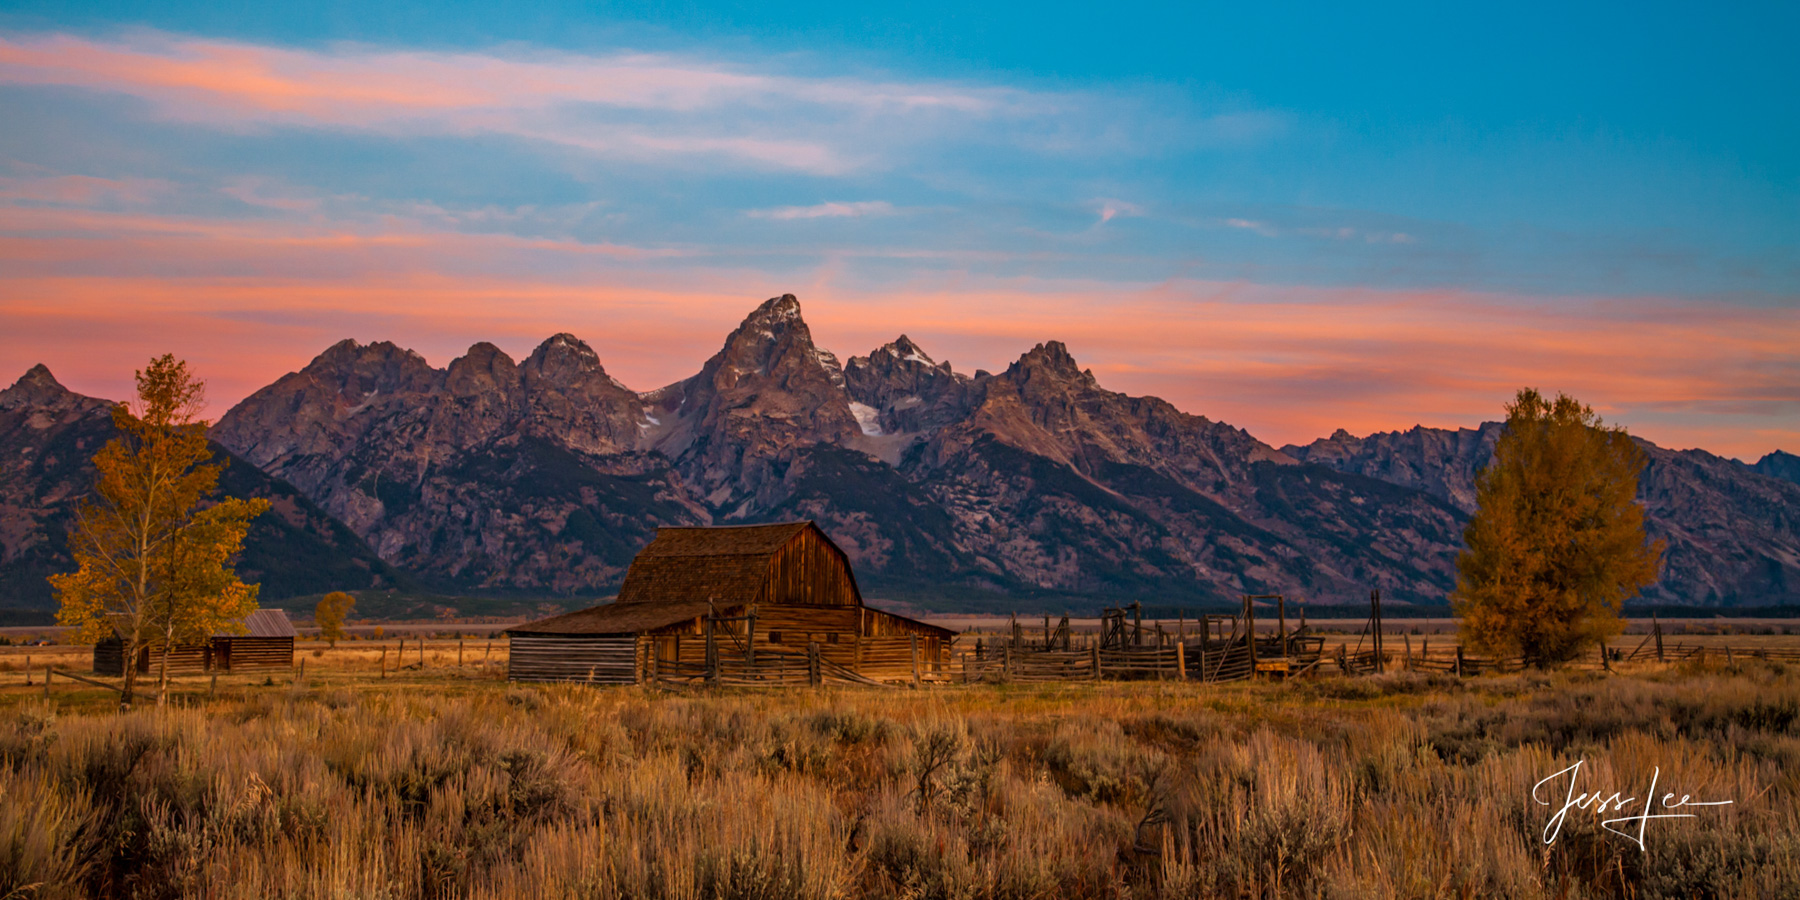 Large format, panarama, quality, museum, fine art, print, jess lee, artist, western, cowboy, photographer, limited edition, high quality, high resolution, beautiful, artistic, landscape, rare, landsca, photo